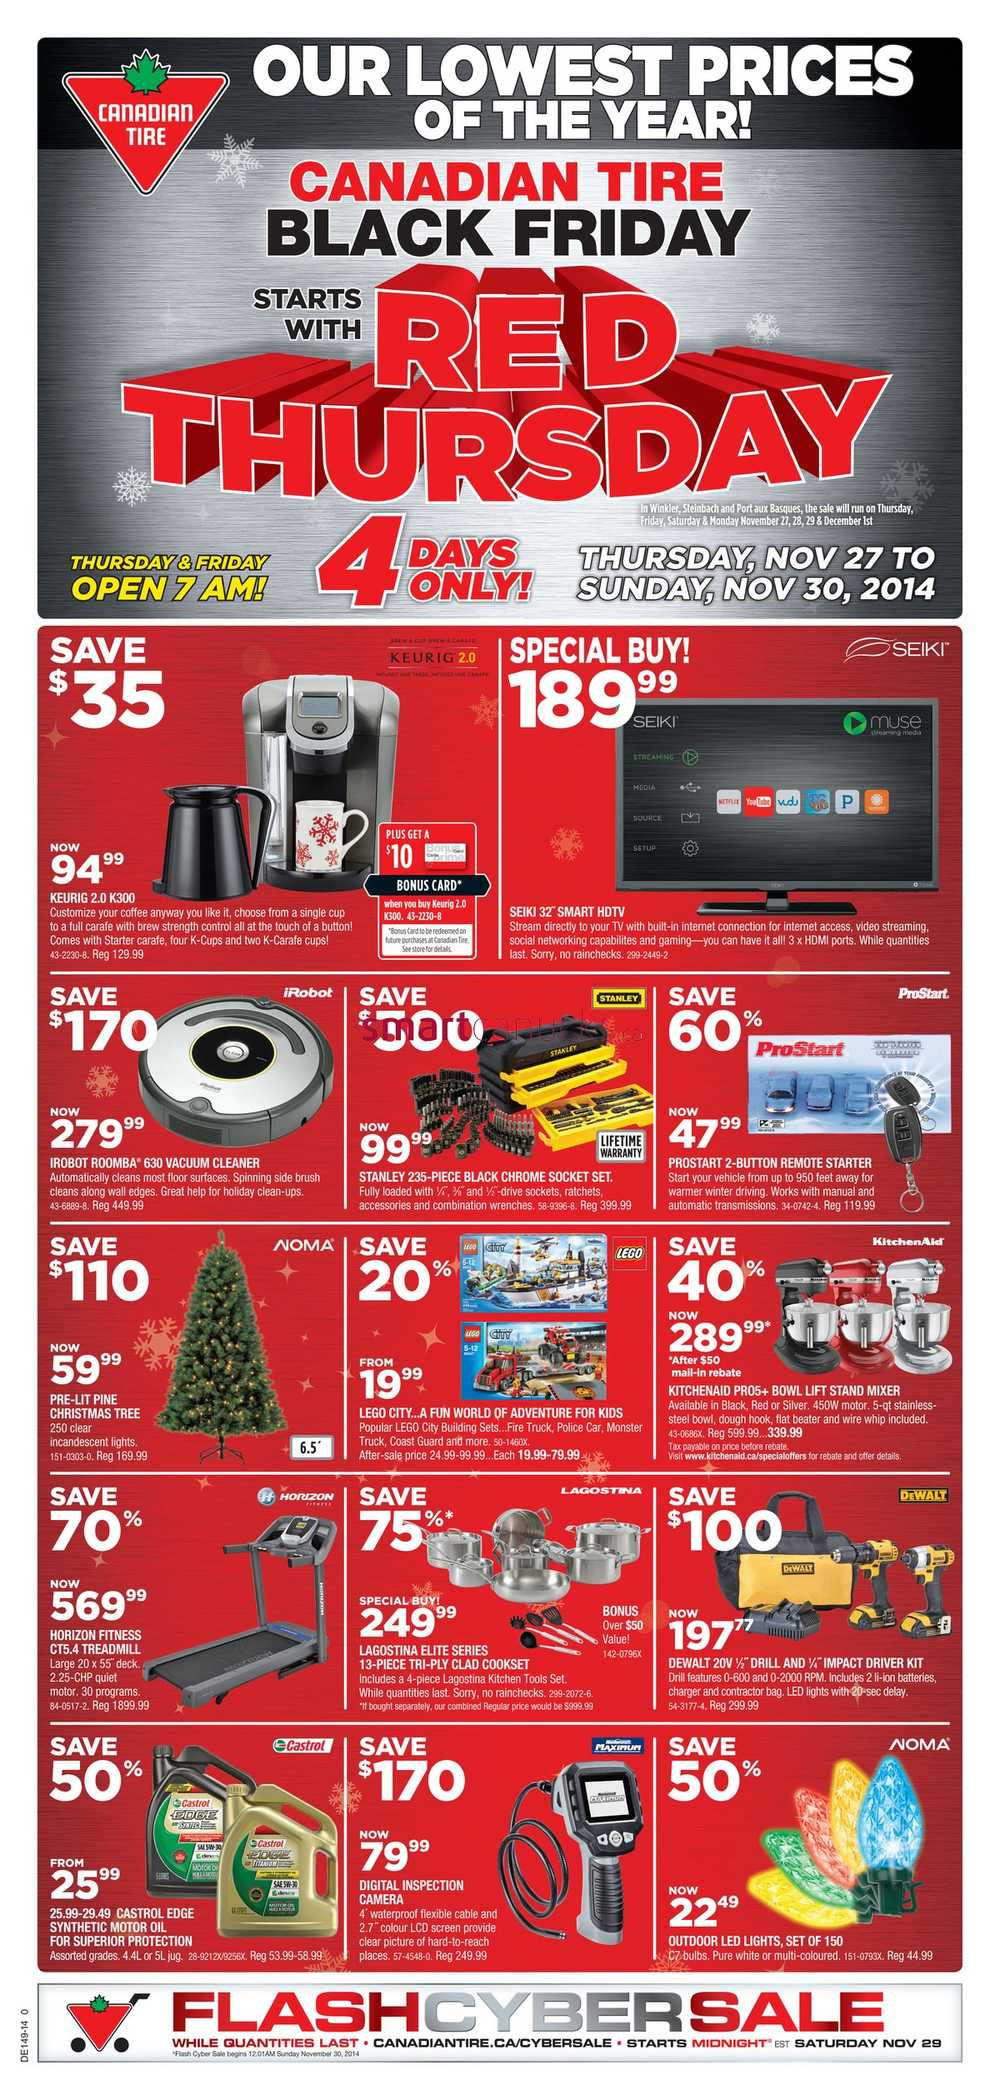 Canadian Tire Black Friday Deals  Off